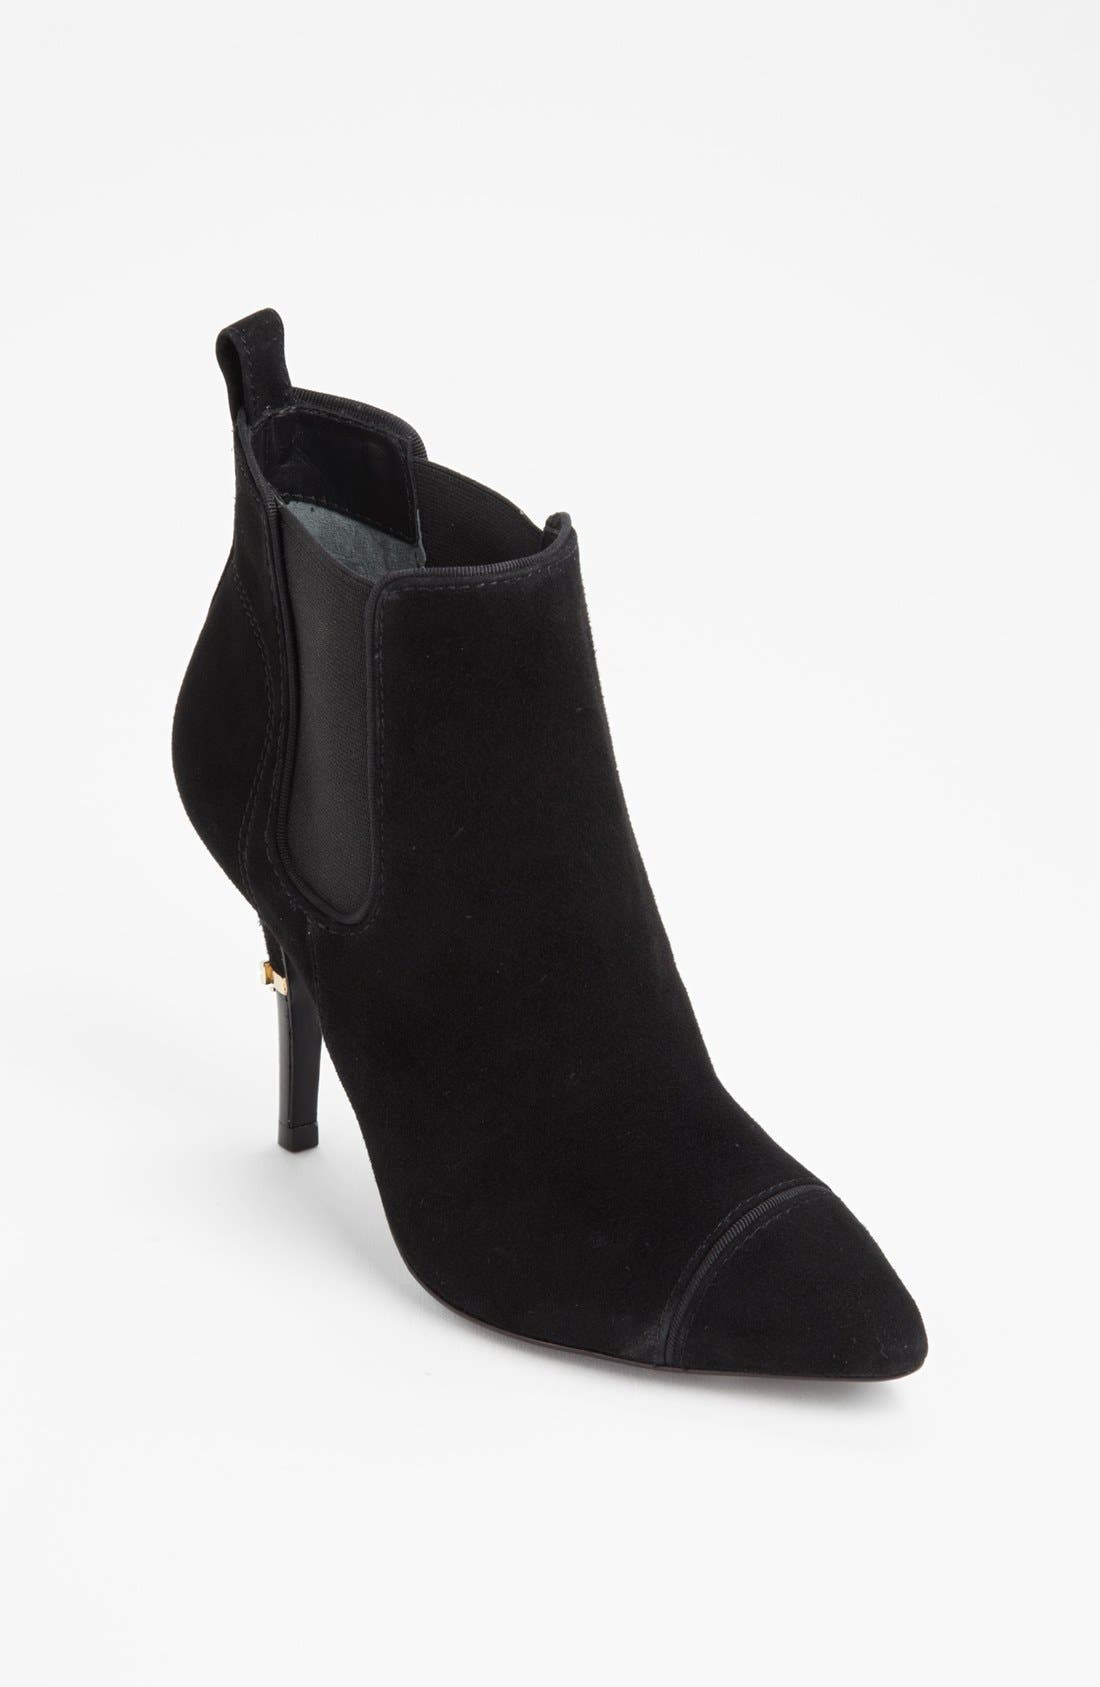 Alternate Image 1 Selected - Tory Burch 'Bernice' Bootie